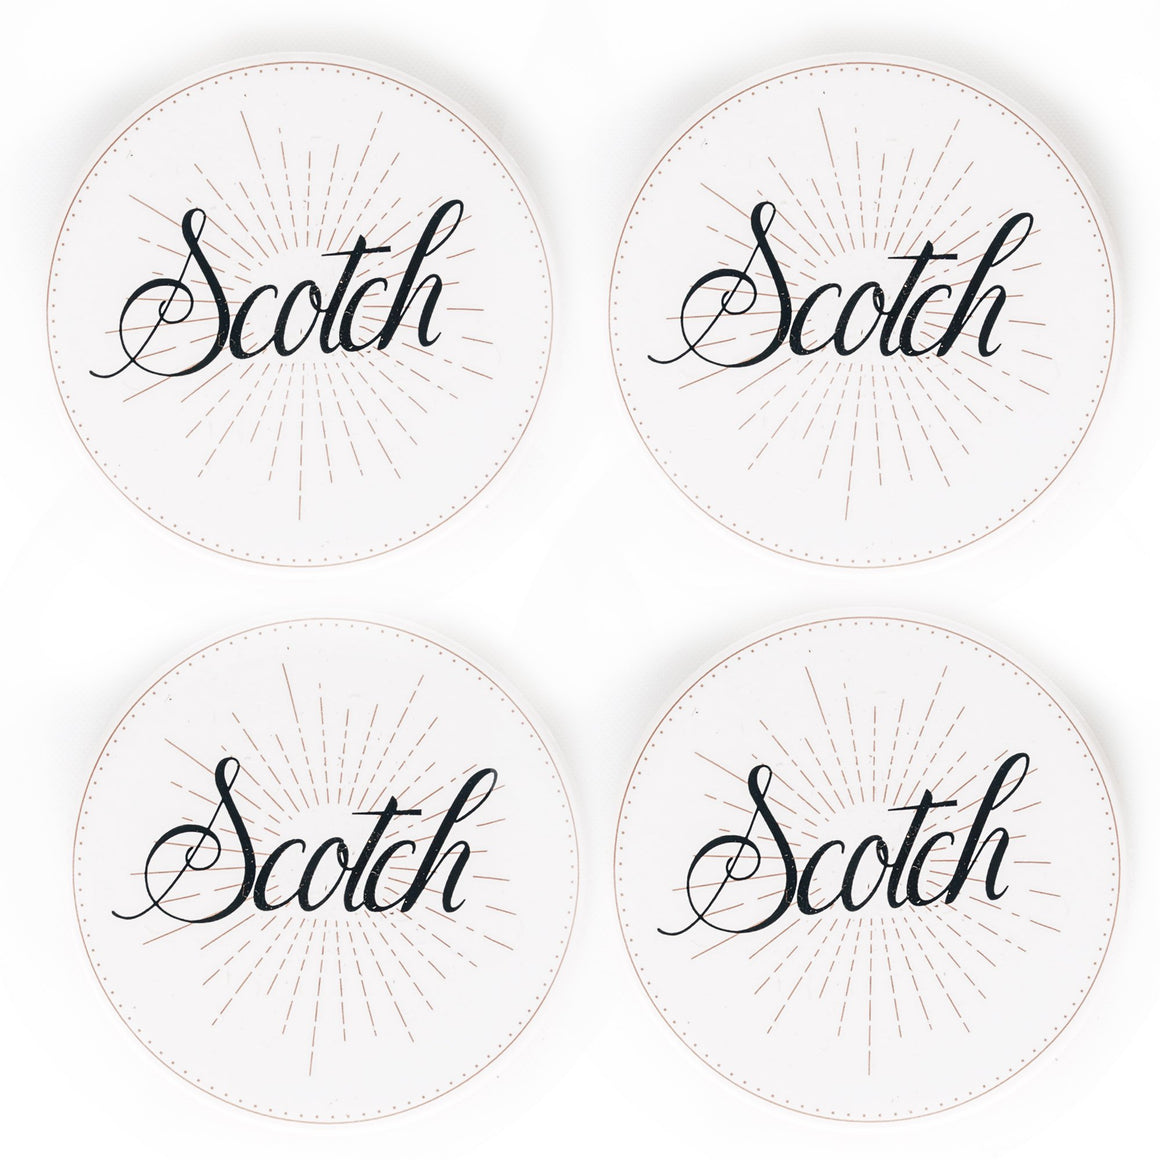 Spirits Coasters - Scotch